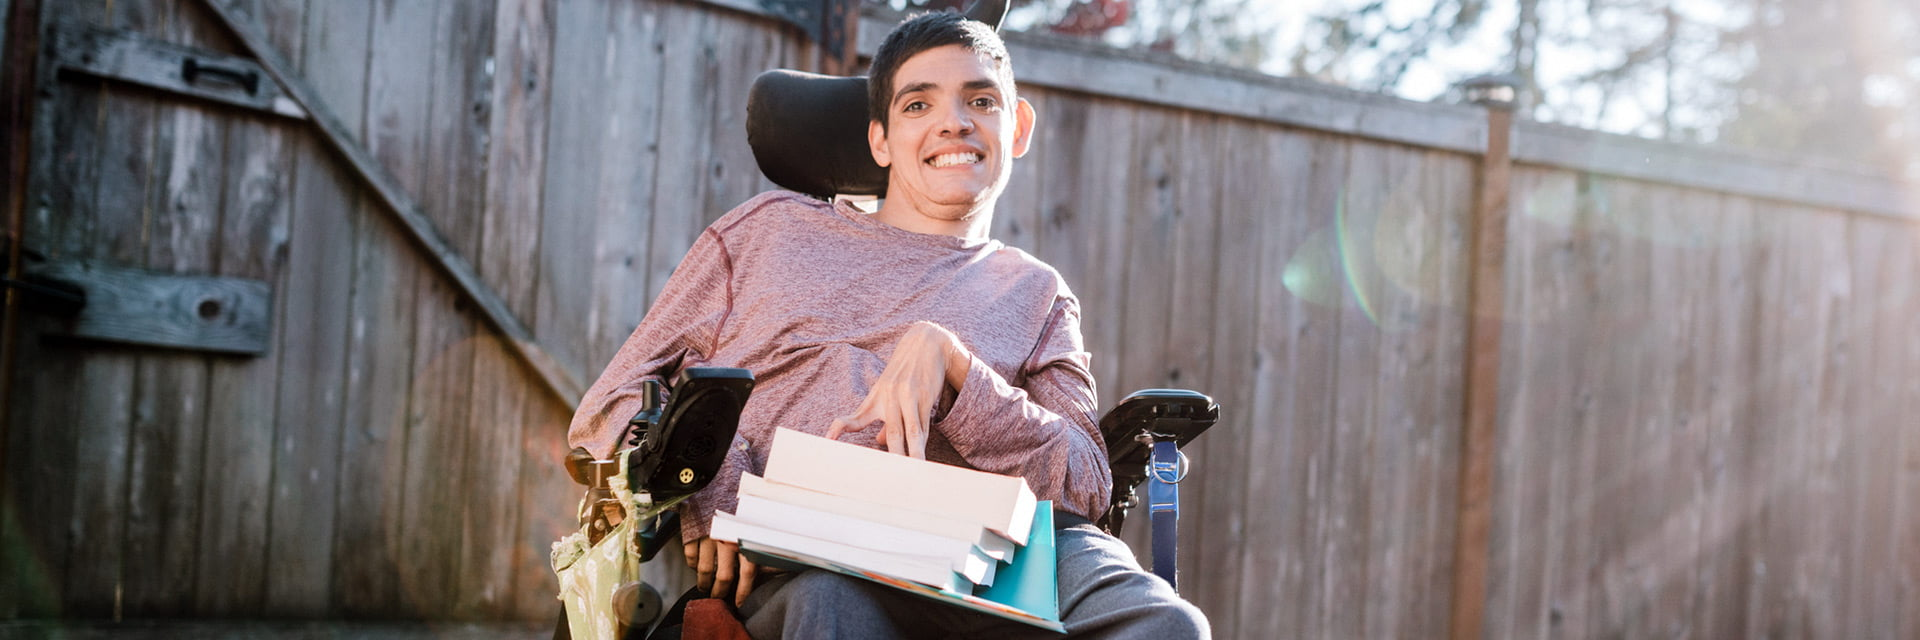 Man with a disability using a wheelchair outside with a stack of books on his lap